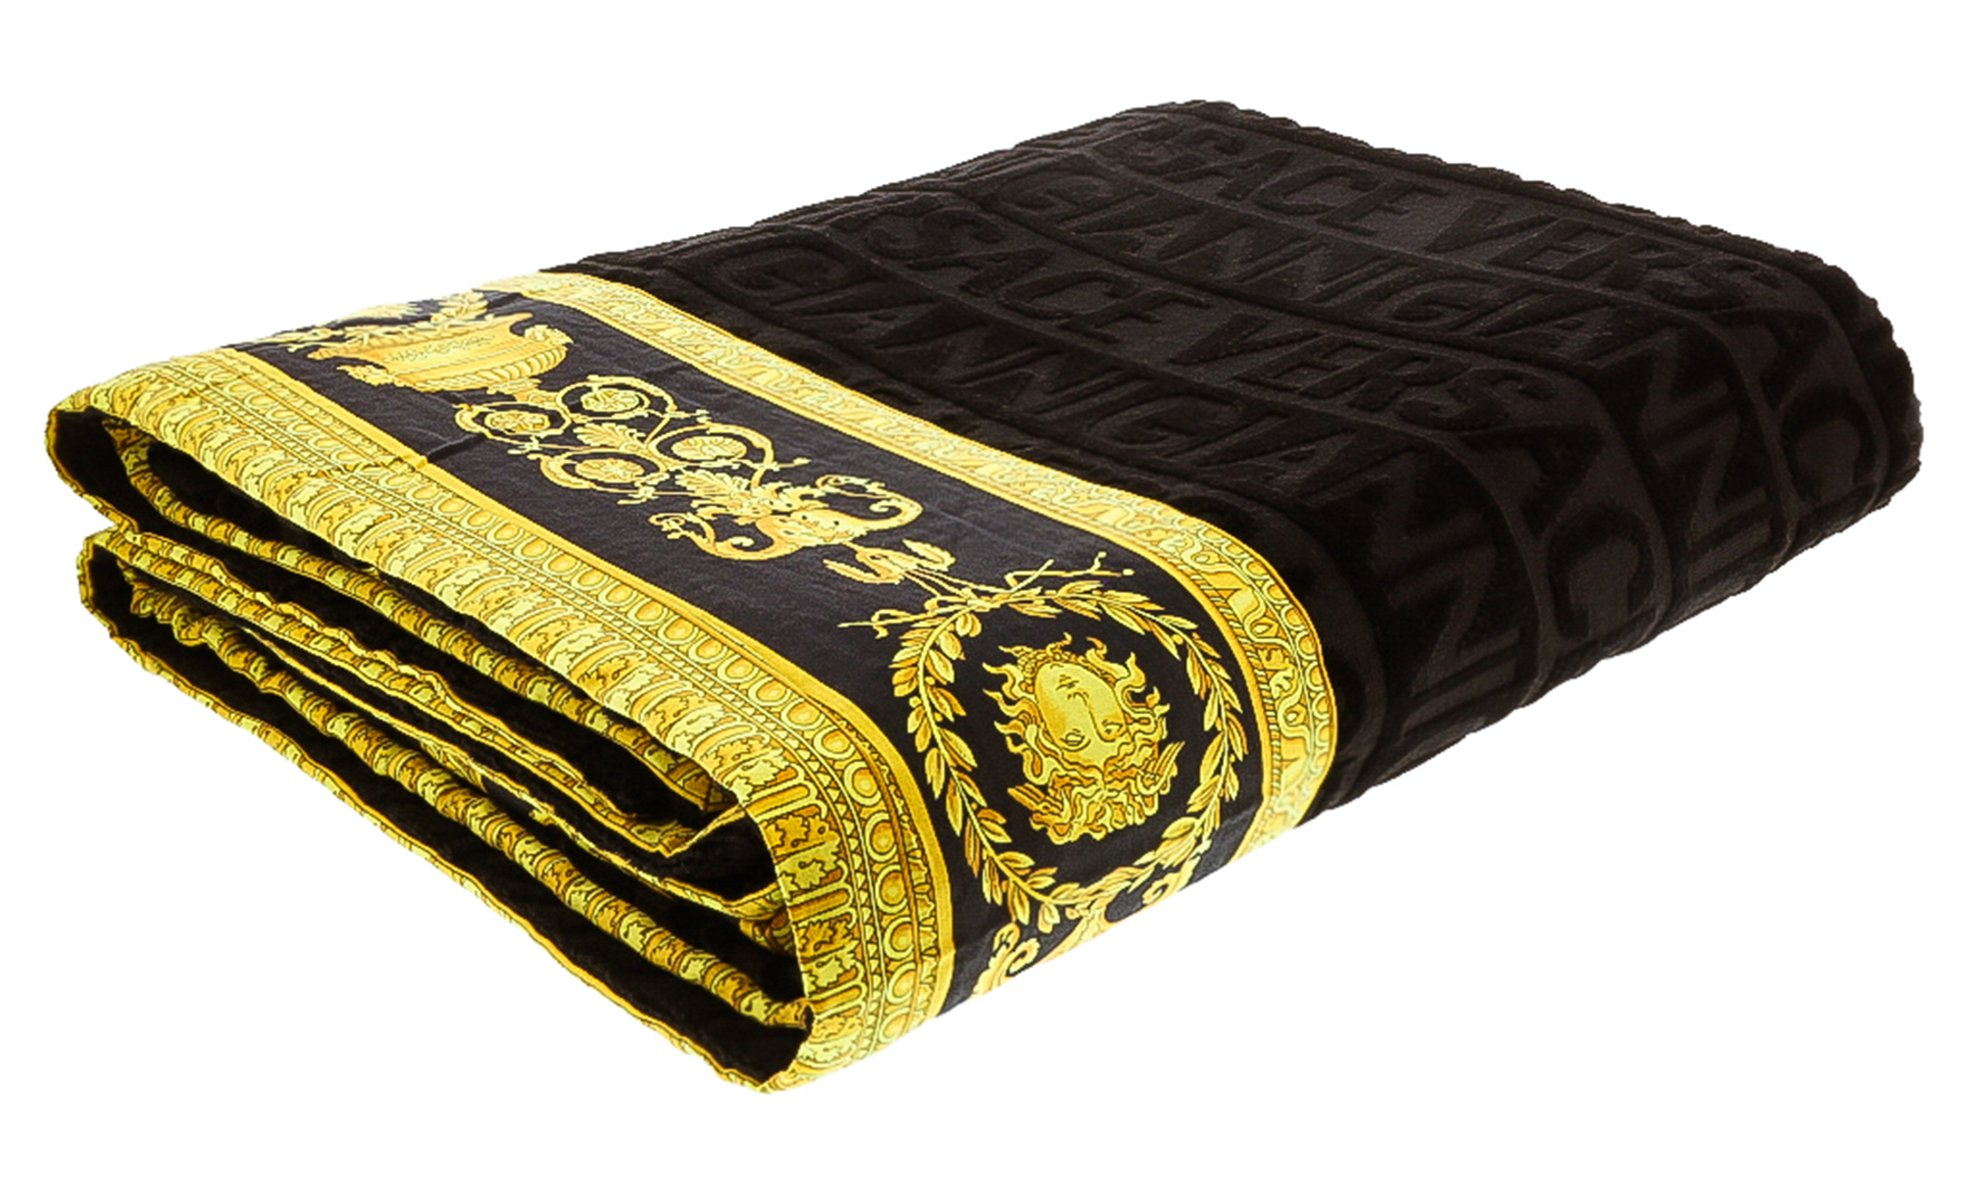 Versace Gianni Unisex Large Throw Bath Beach Towel Medusa Head Barocco Detail Black